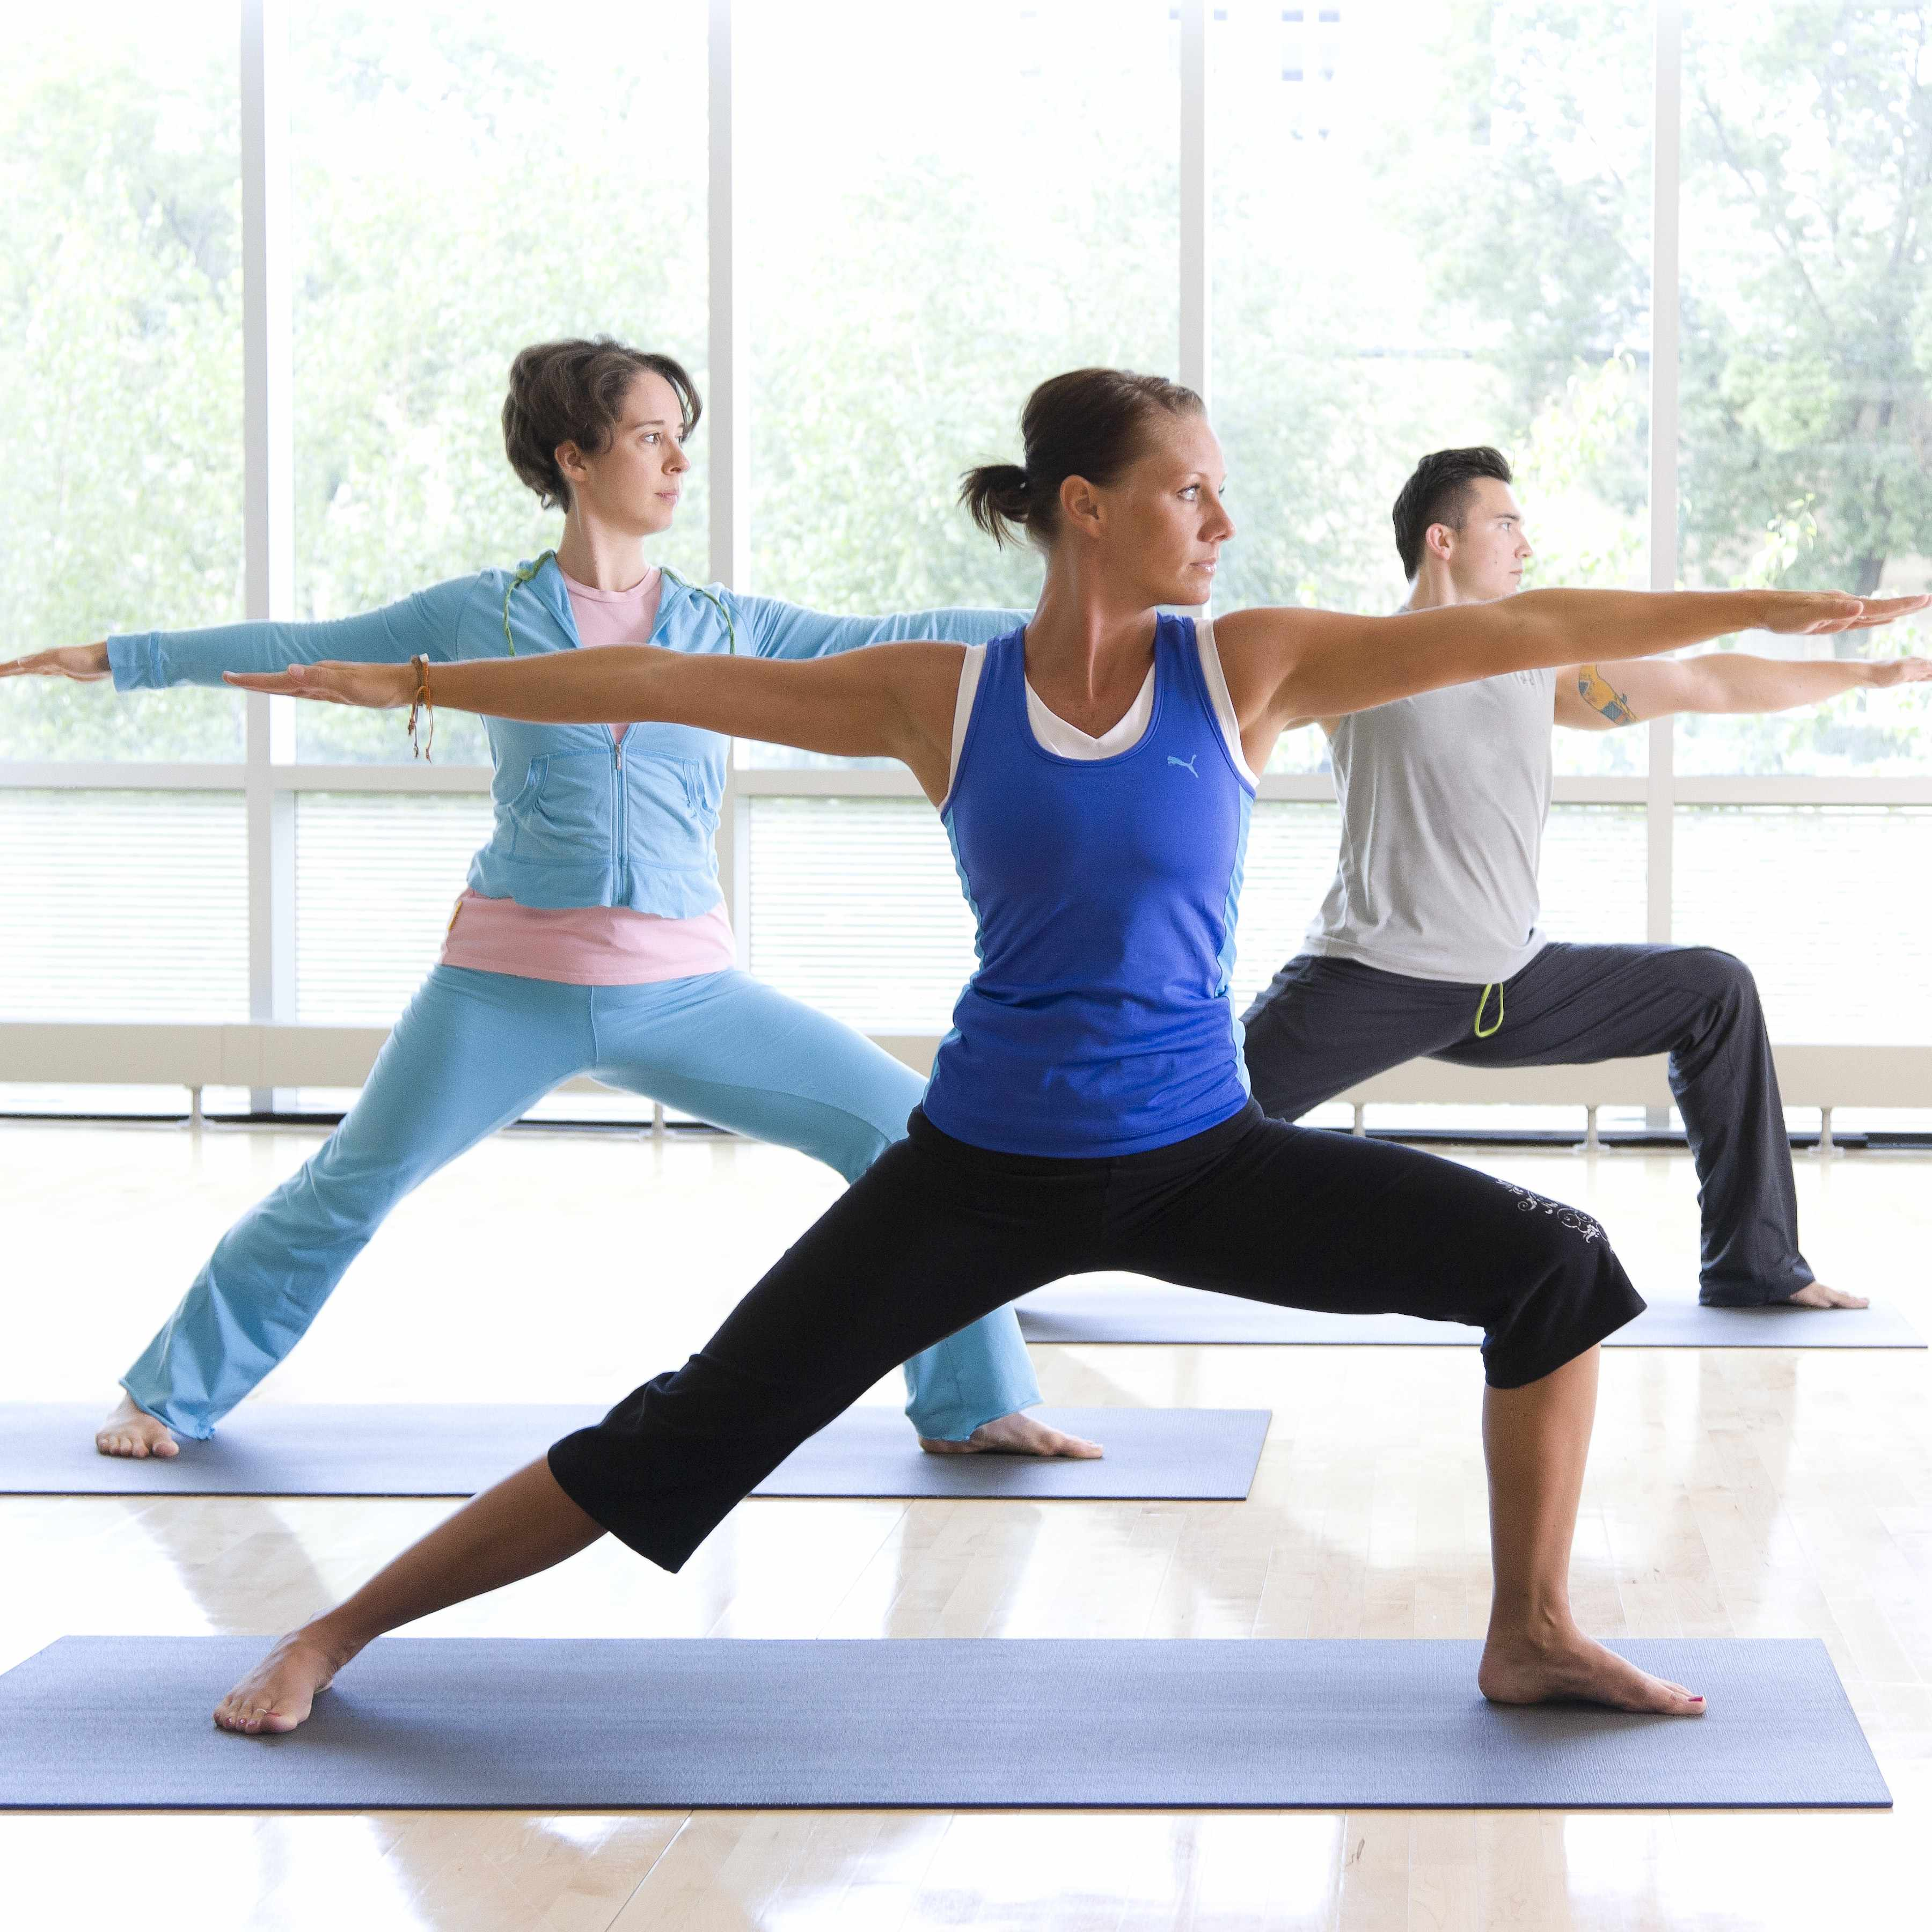 two women and a man doing yoga in front of a wall of windows in a sunny space